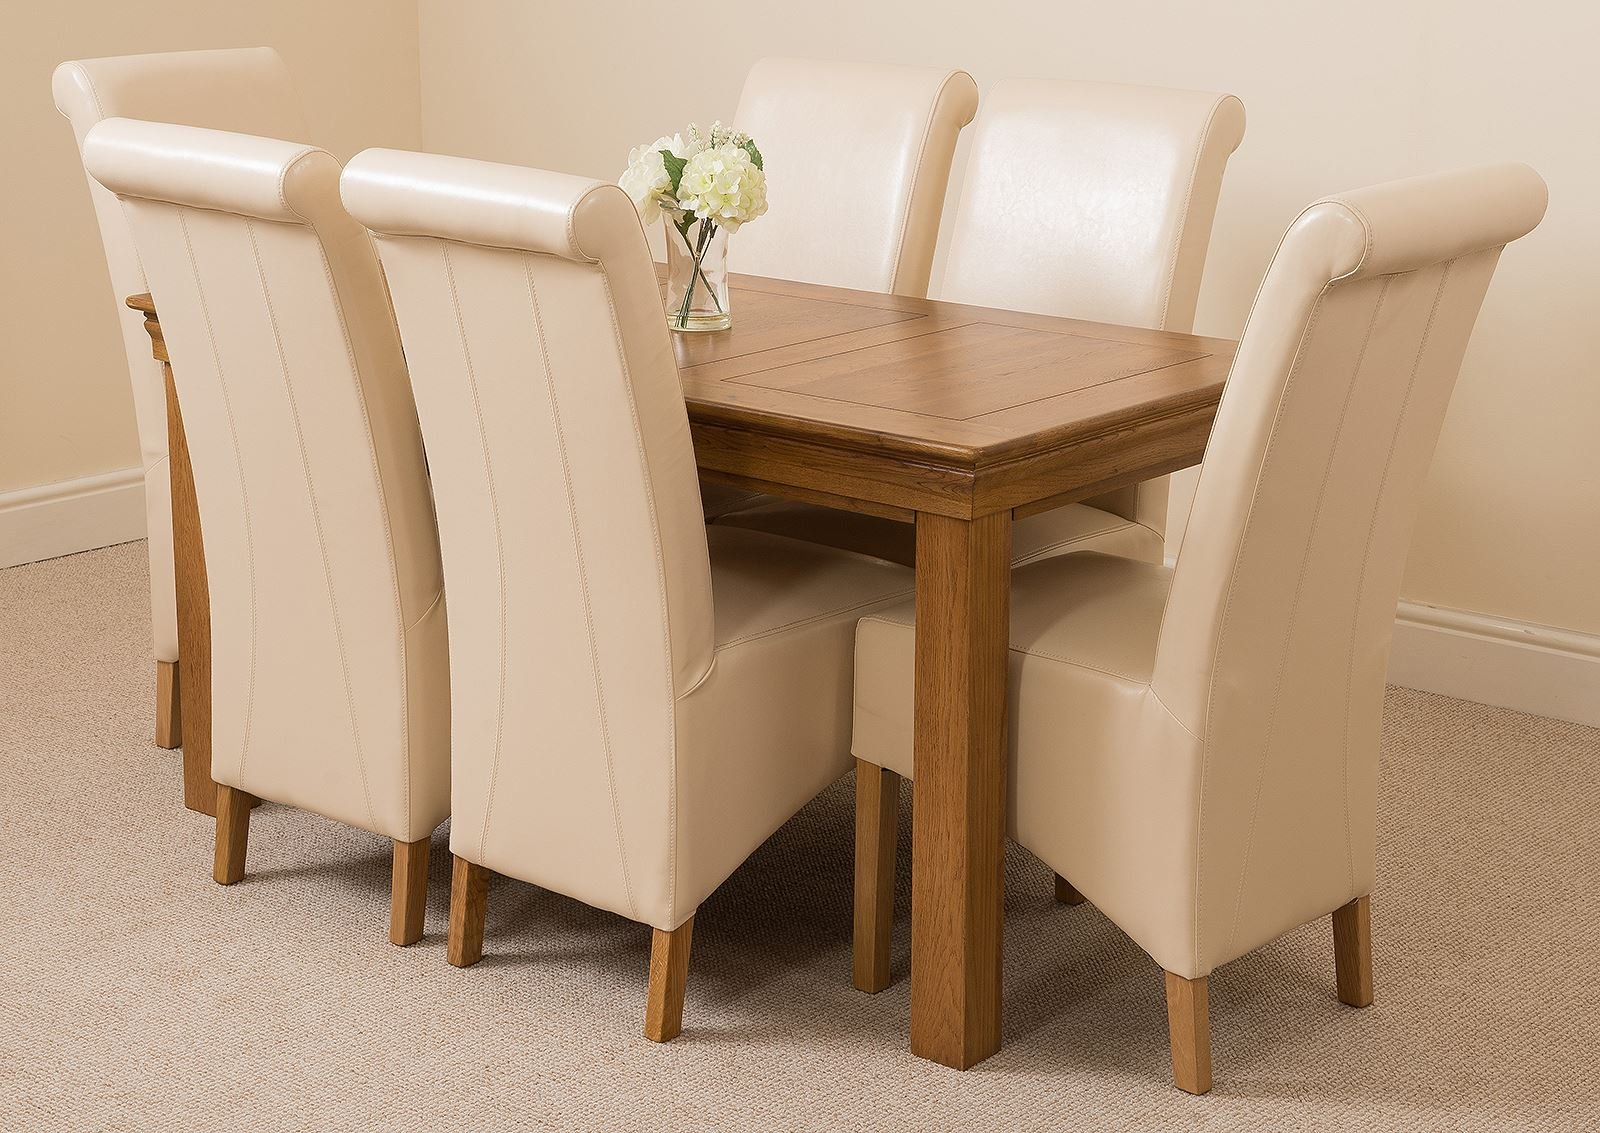 81i0qUqeidL - French Rustic Solid Oak 150 cm Dining Table with 4 or 6 Montana Dining Chairs